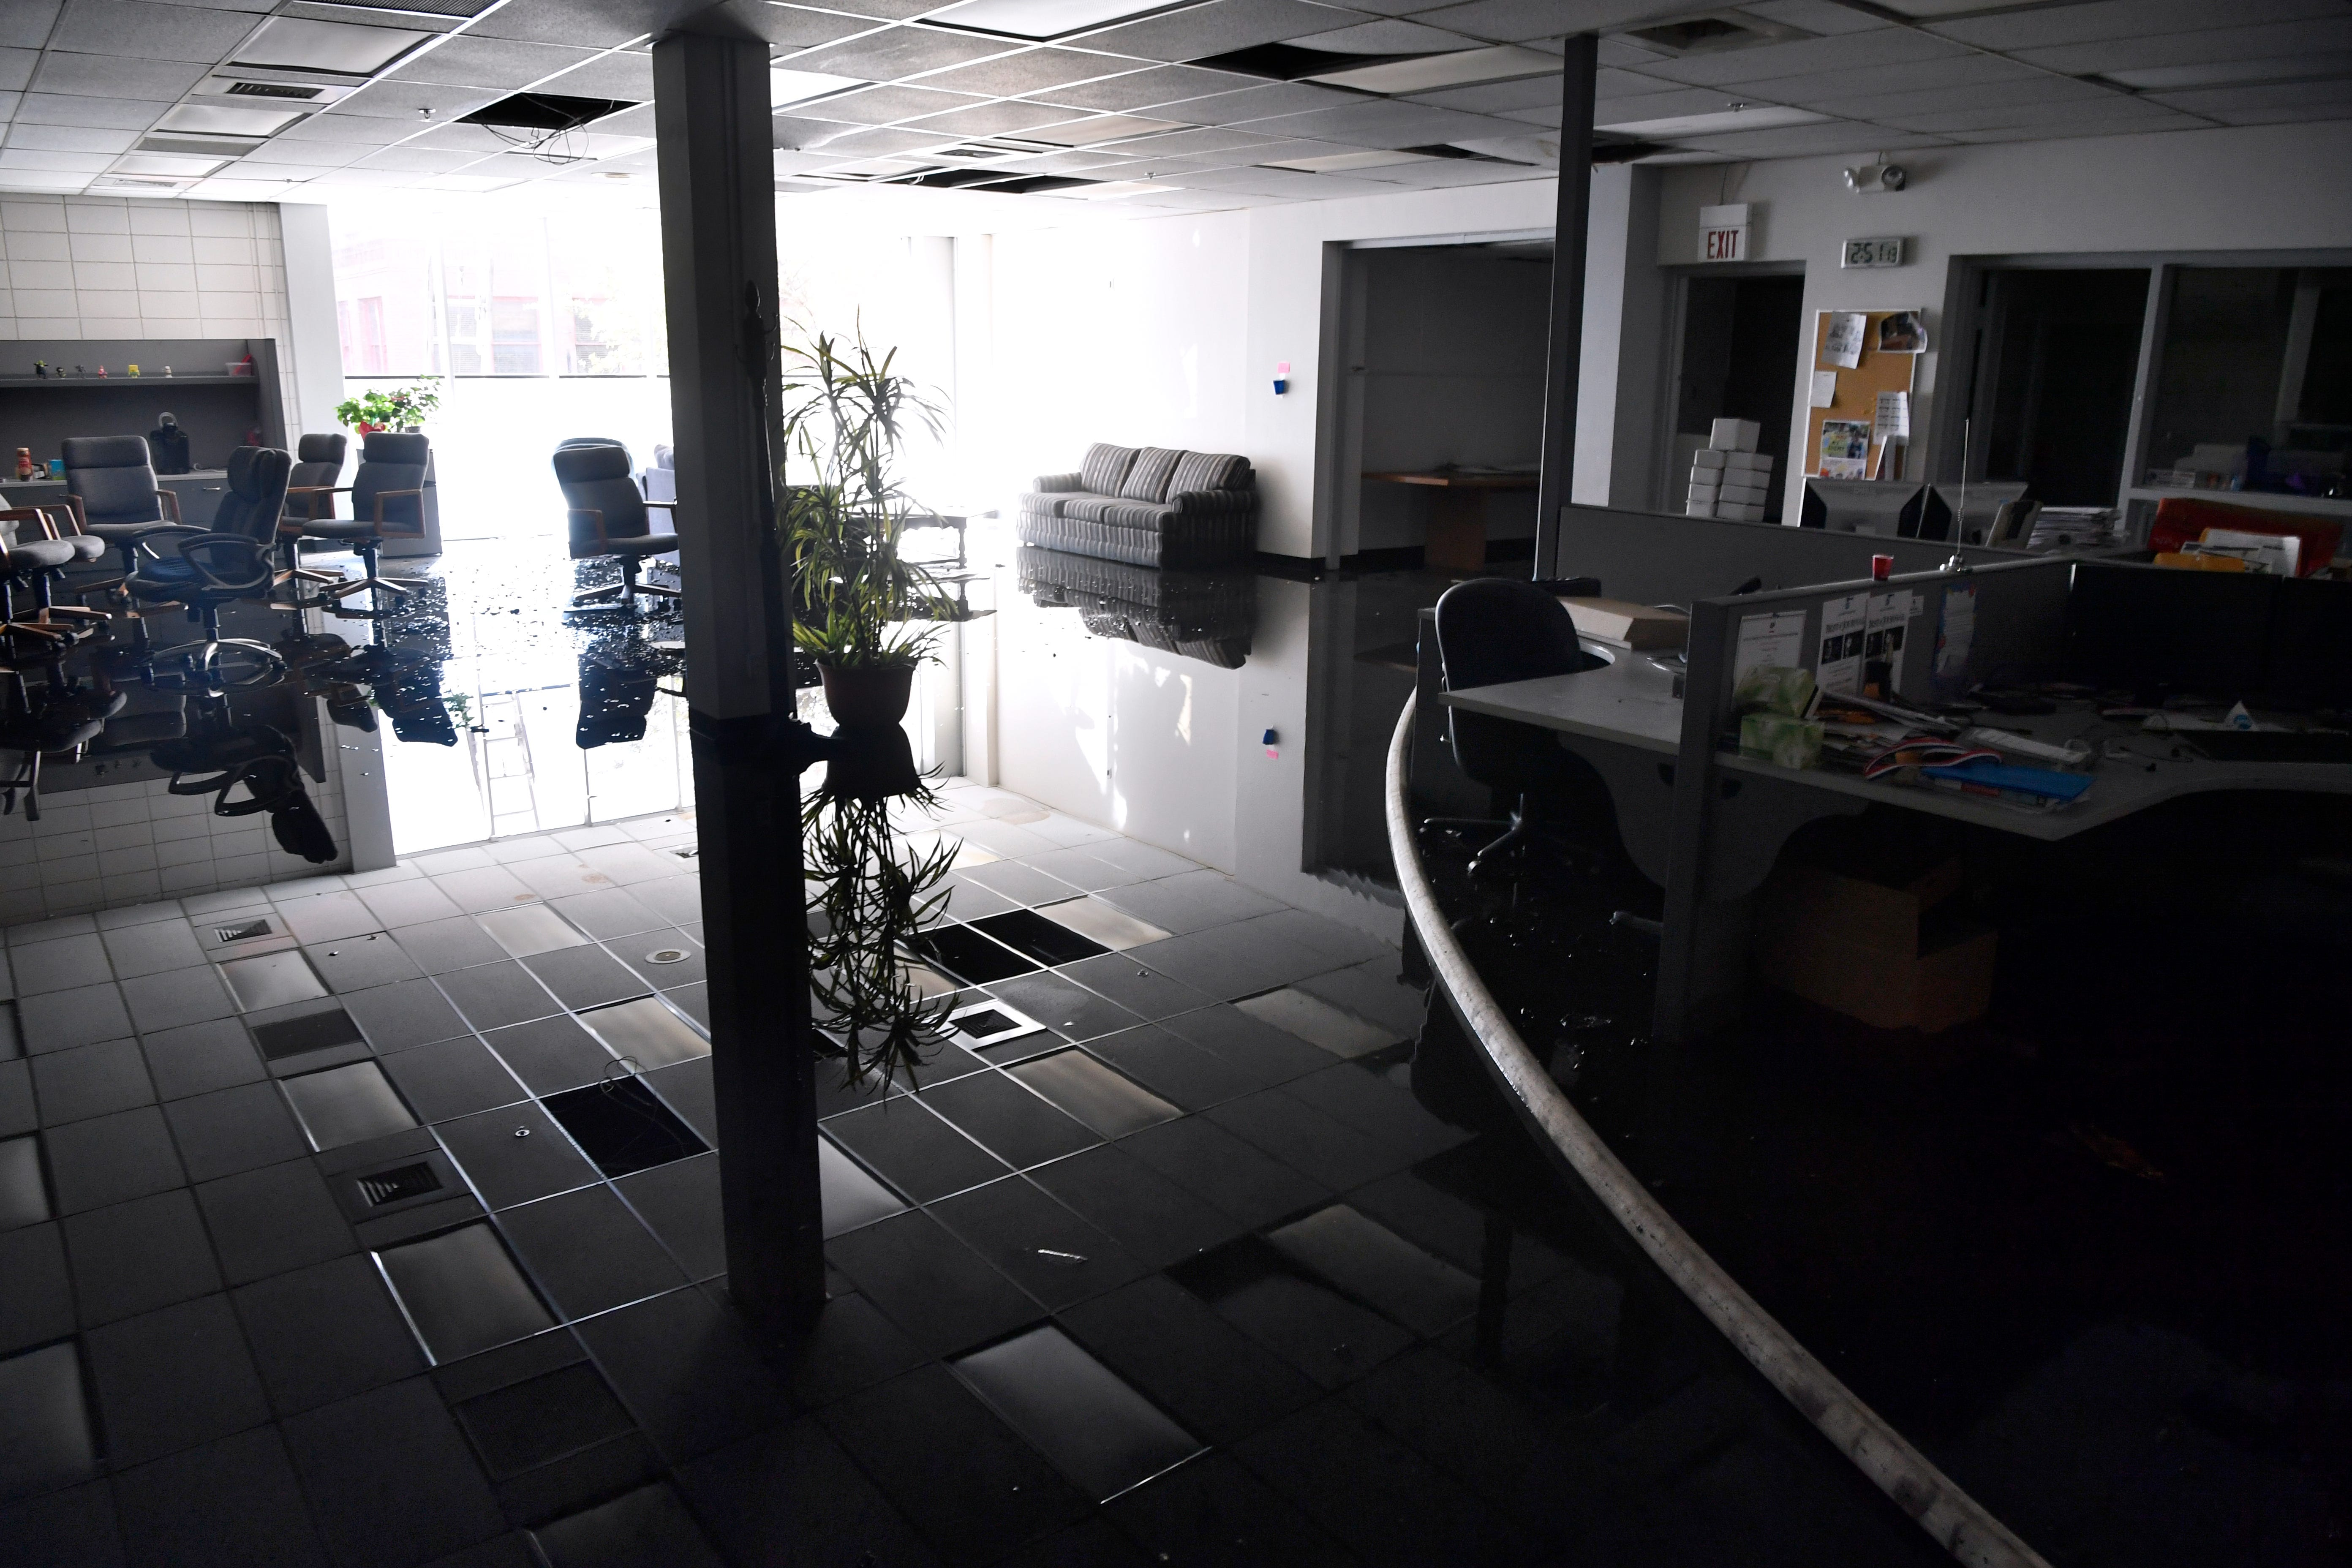 Two to three inches of water covers the newsroom of the Abilene Reporter-News Thursday Nov. 15, 2018. Abilene firefighters respond to a two-alarm blaze at the newspaper at 9:20 a.m., by 2:30 firefighters were escorting some employees in to retrieve hard drives and other items.